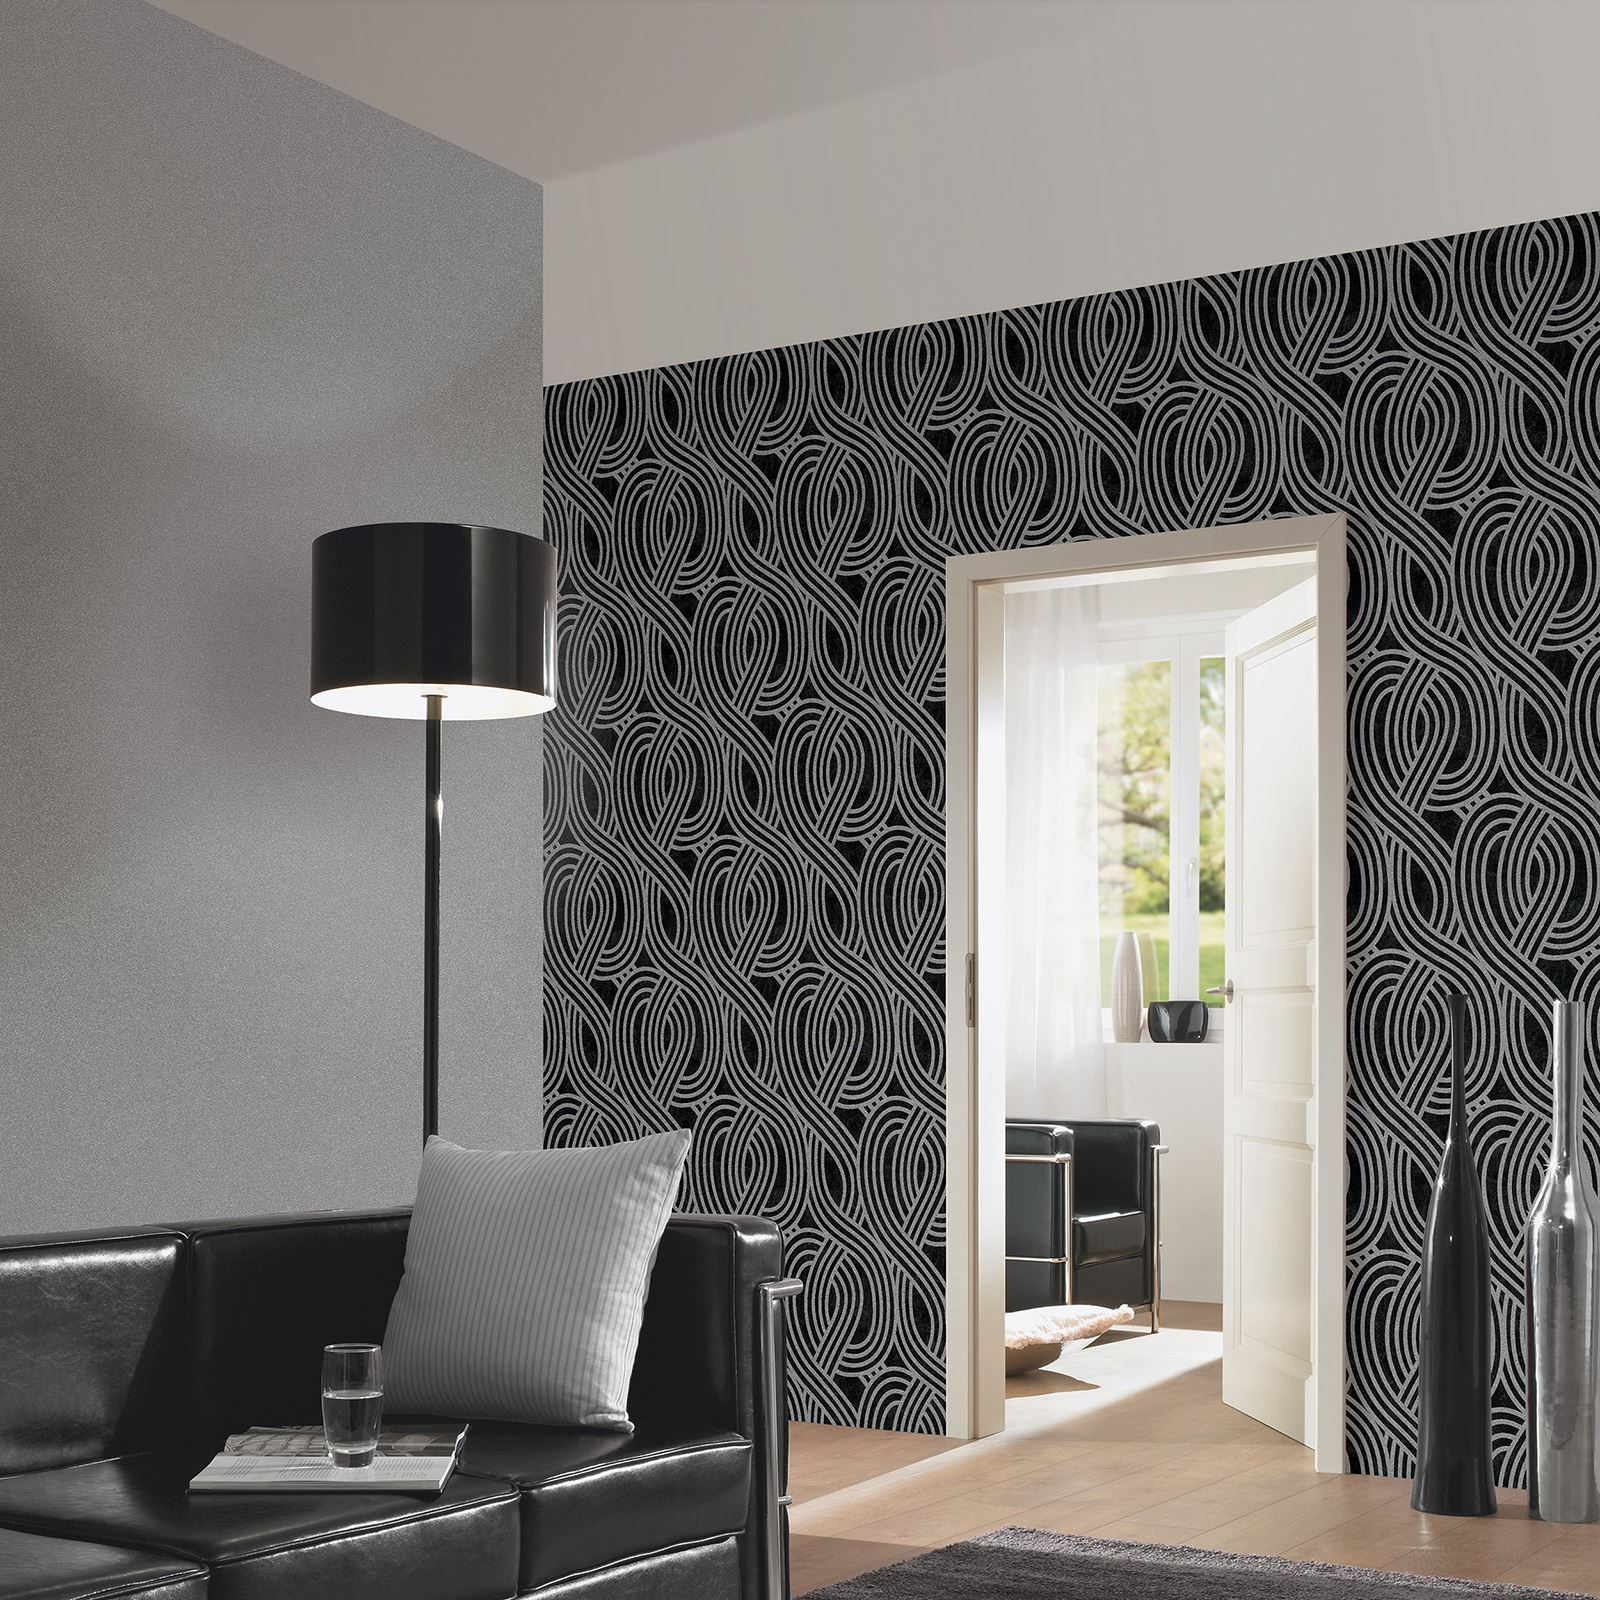 Carat glitter wallpaper dark silver 13348 60 bedroom - Feature wall ideas living room wallpaper ...